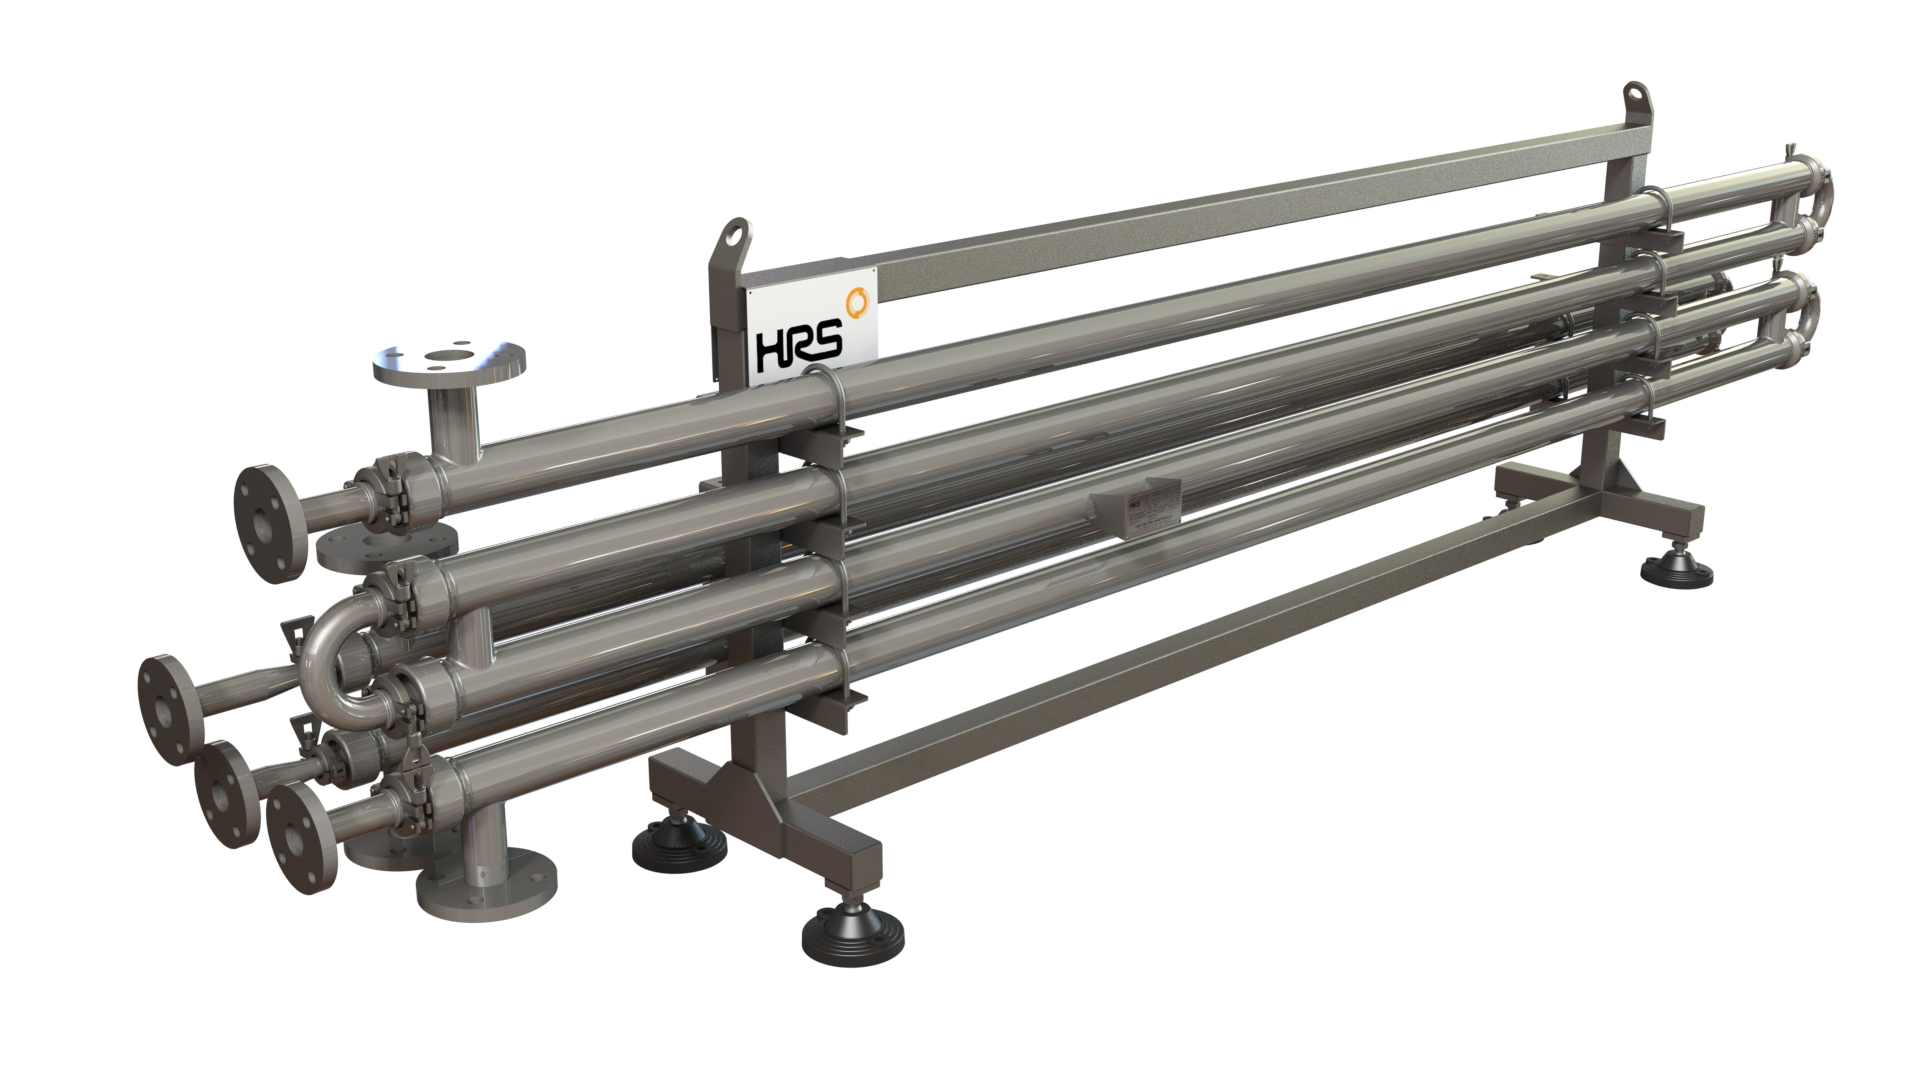 _HRS DTR Series Double Tube Heat Exchanger